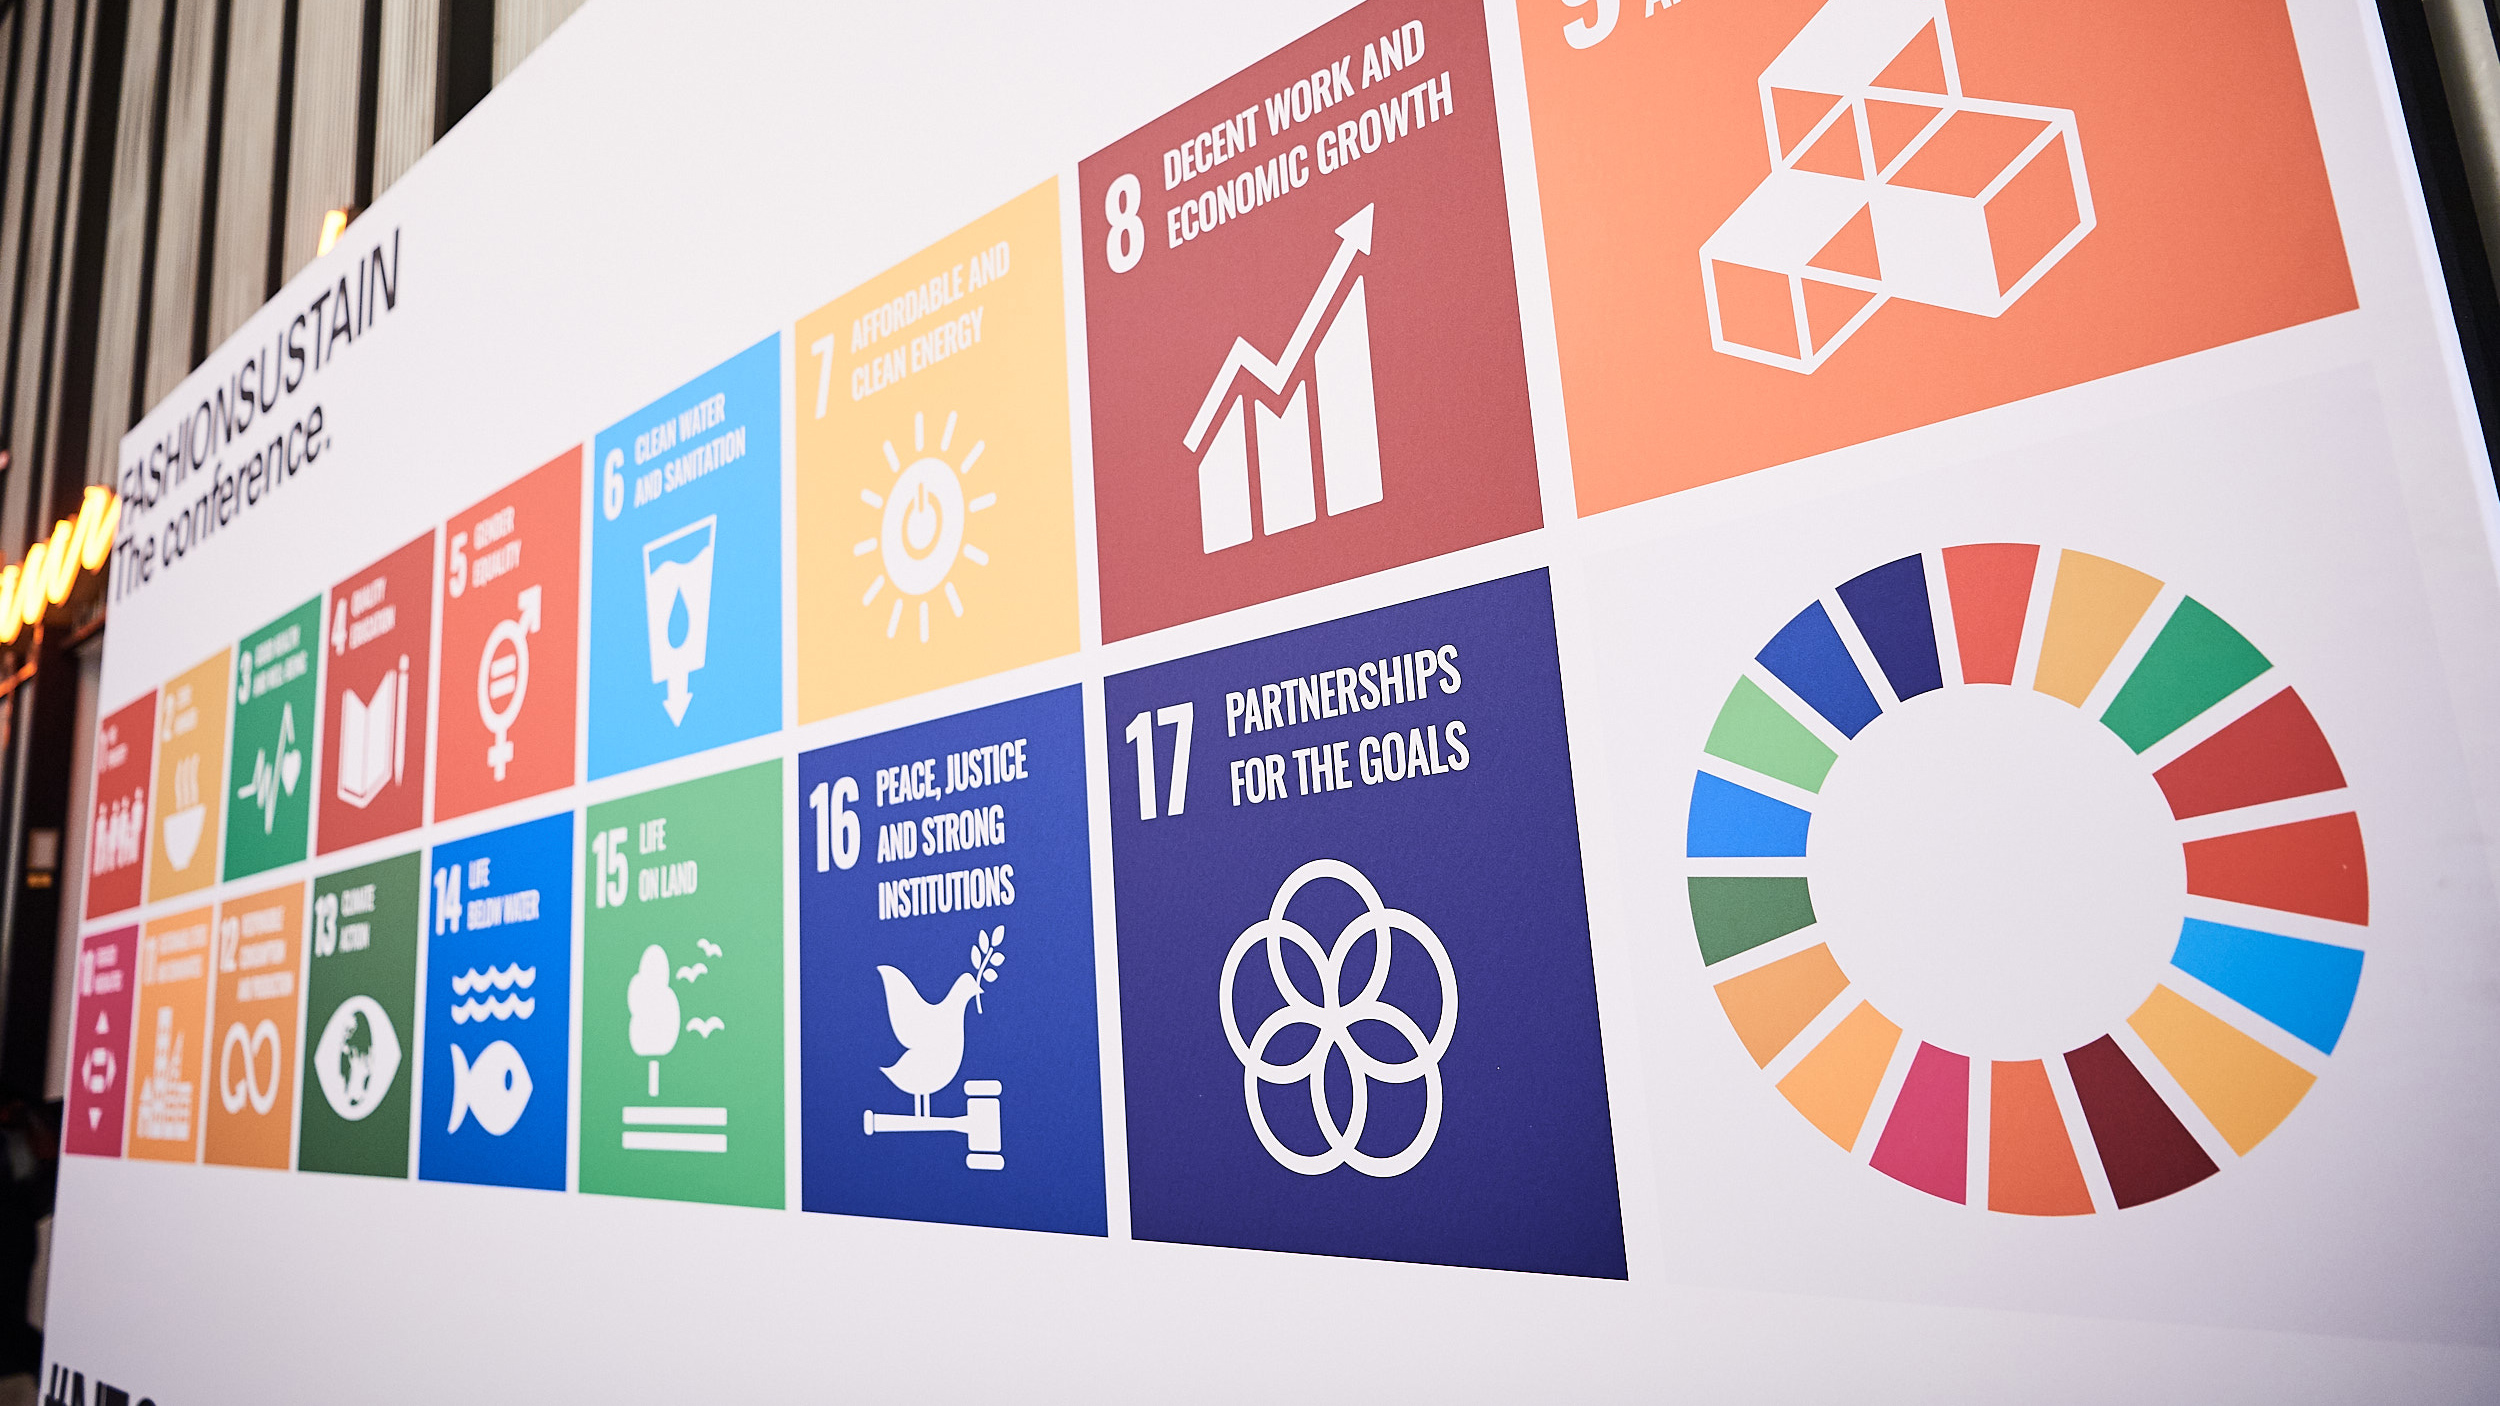 Sustainable Development Goals at a wall at Neonyt